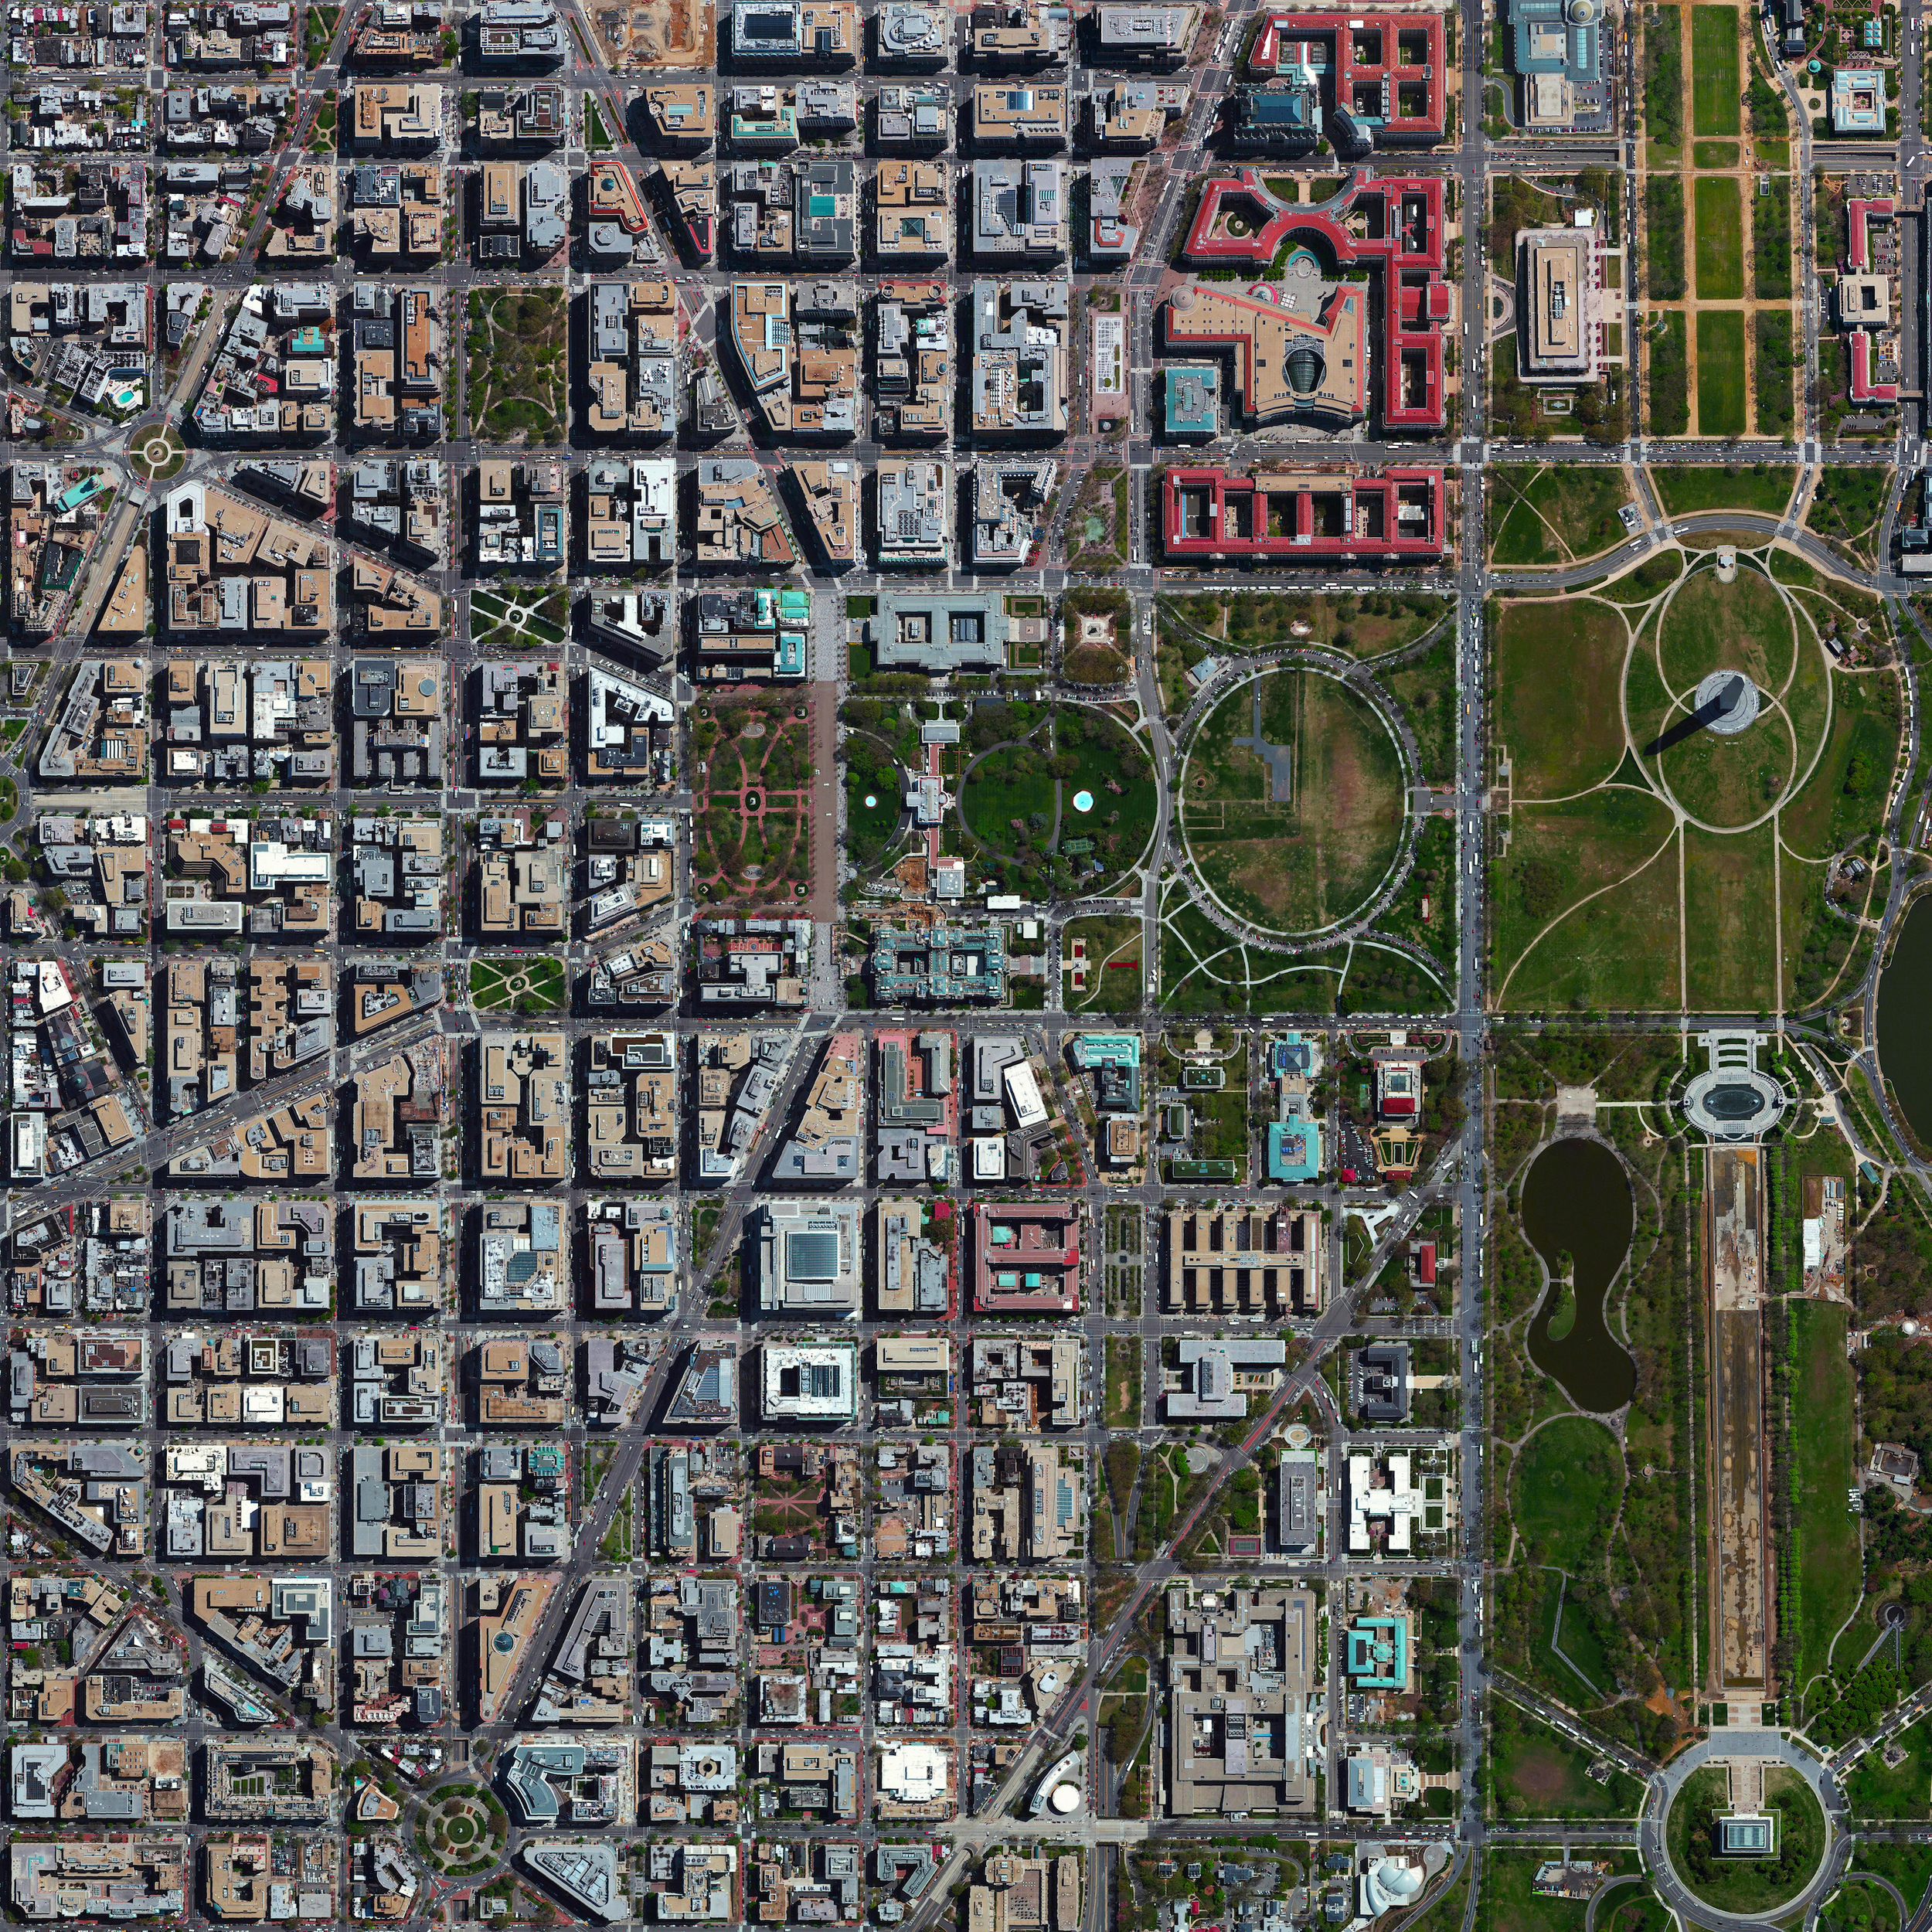 "10/22/2015   L'Enfant Plan   Washington, D.C., USA  38°53′26″N 77°1′13″W     The urban plan for Washington, D.C. - the L'Enfant Plan - was developed in 1791 by Major Pierre Charles L'Enfant for George Washington, the first President of the United States. L'Enfant designed a compass-aligned grid for the city's streets, with intersecting diagonal avenues that were later named after the states of the union. The diagonal avenues also intersect with the north-south and east-west streets at circles and rectangular plazas in order to create more open, green spaces. Lastly, L'Enfant laid out a 400 foot-wide (122 meter) garden-lined ""grand avenue"" - what is now know as the National Mall – that connects the US Capitol Building, the Washington Monument, and the Lincoln Memorial (the latter two are visible at right in this Overview)."